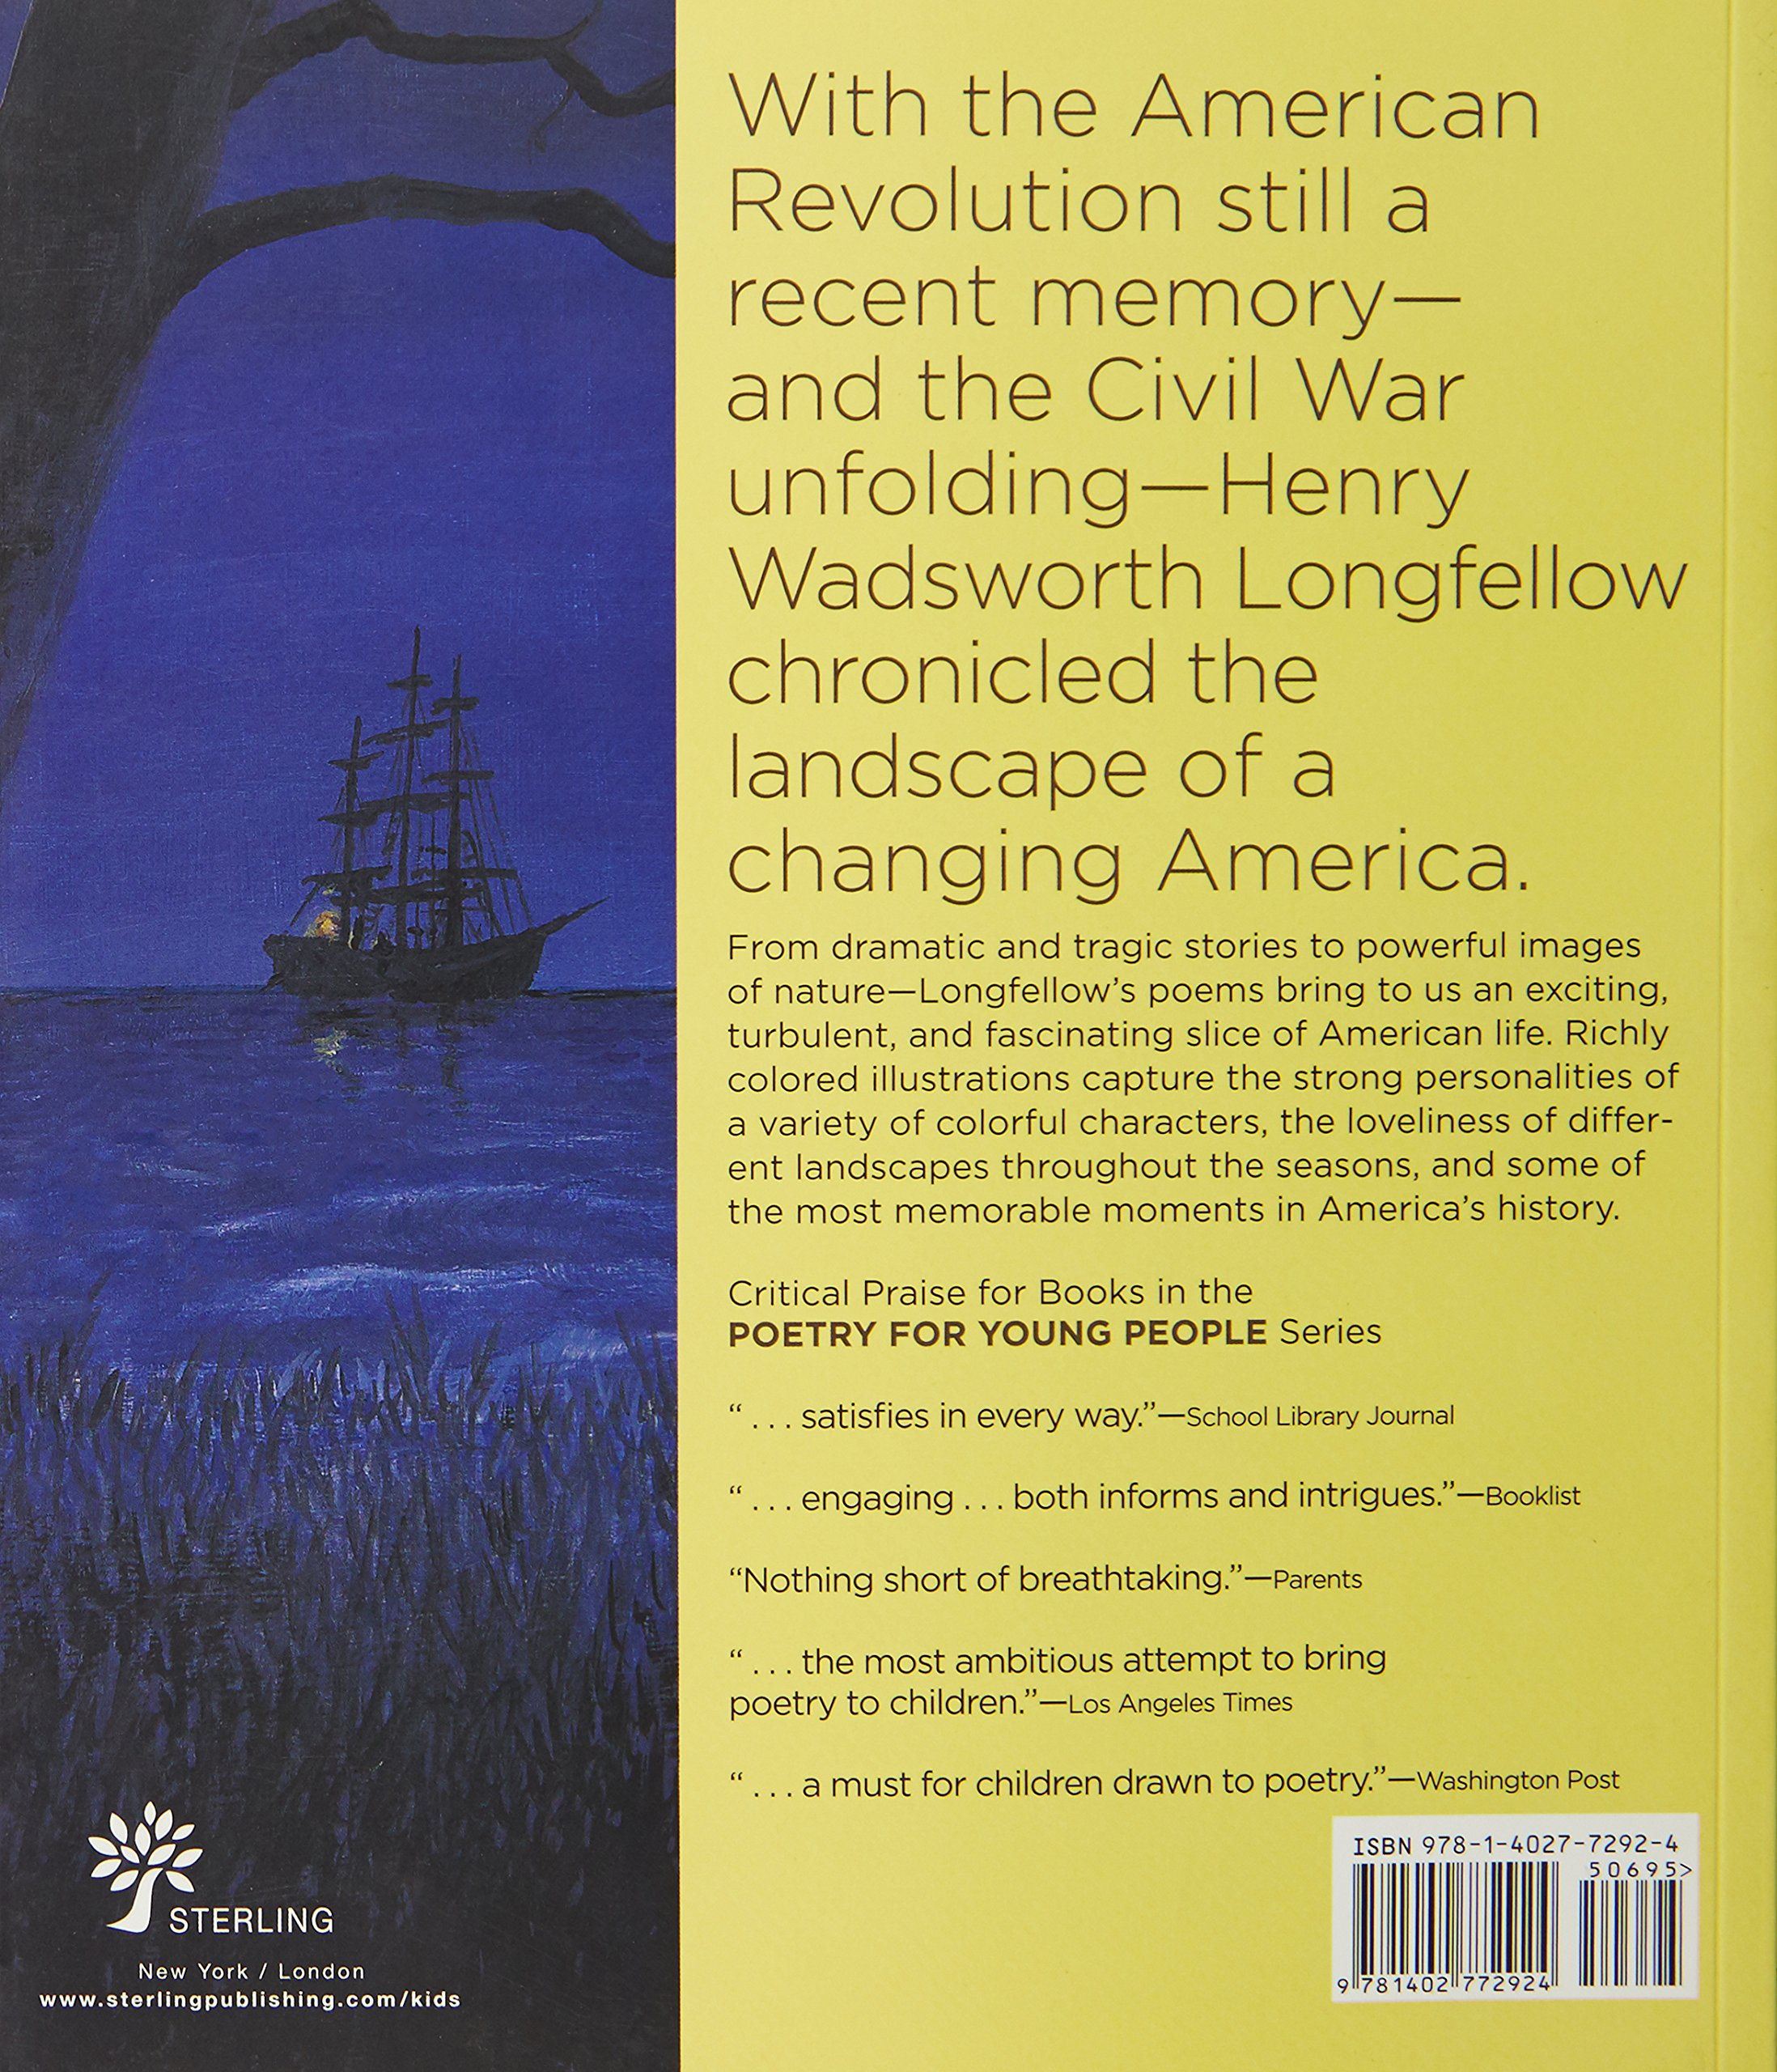 poetry for young people henry wadsworth longfellow s  poetry for young people henry wadsworth longfellow s schoonmaker chad wallace 9781402772924 com books